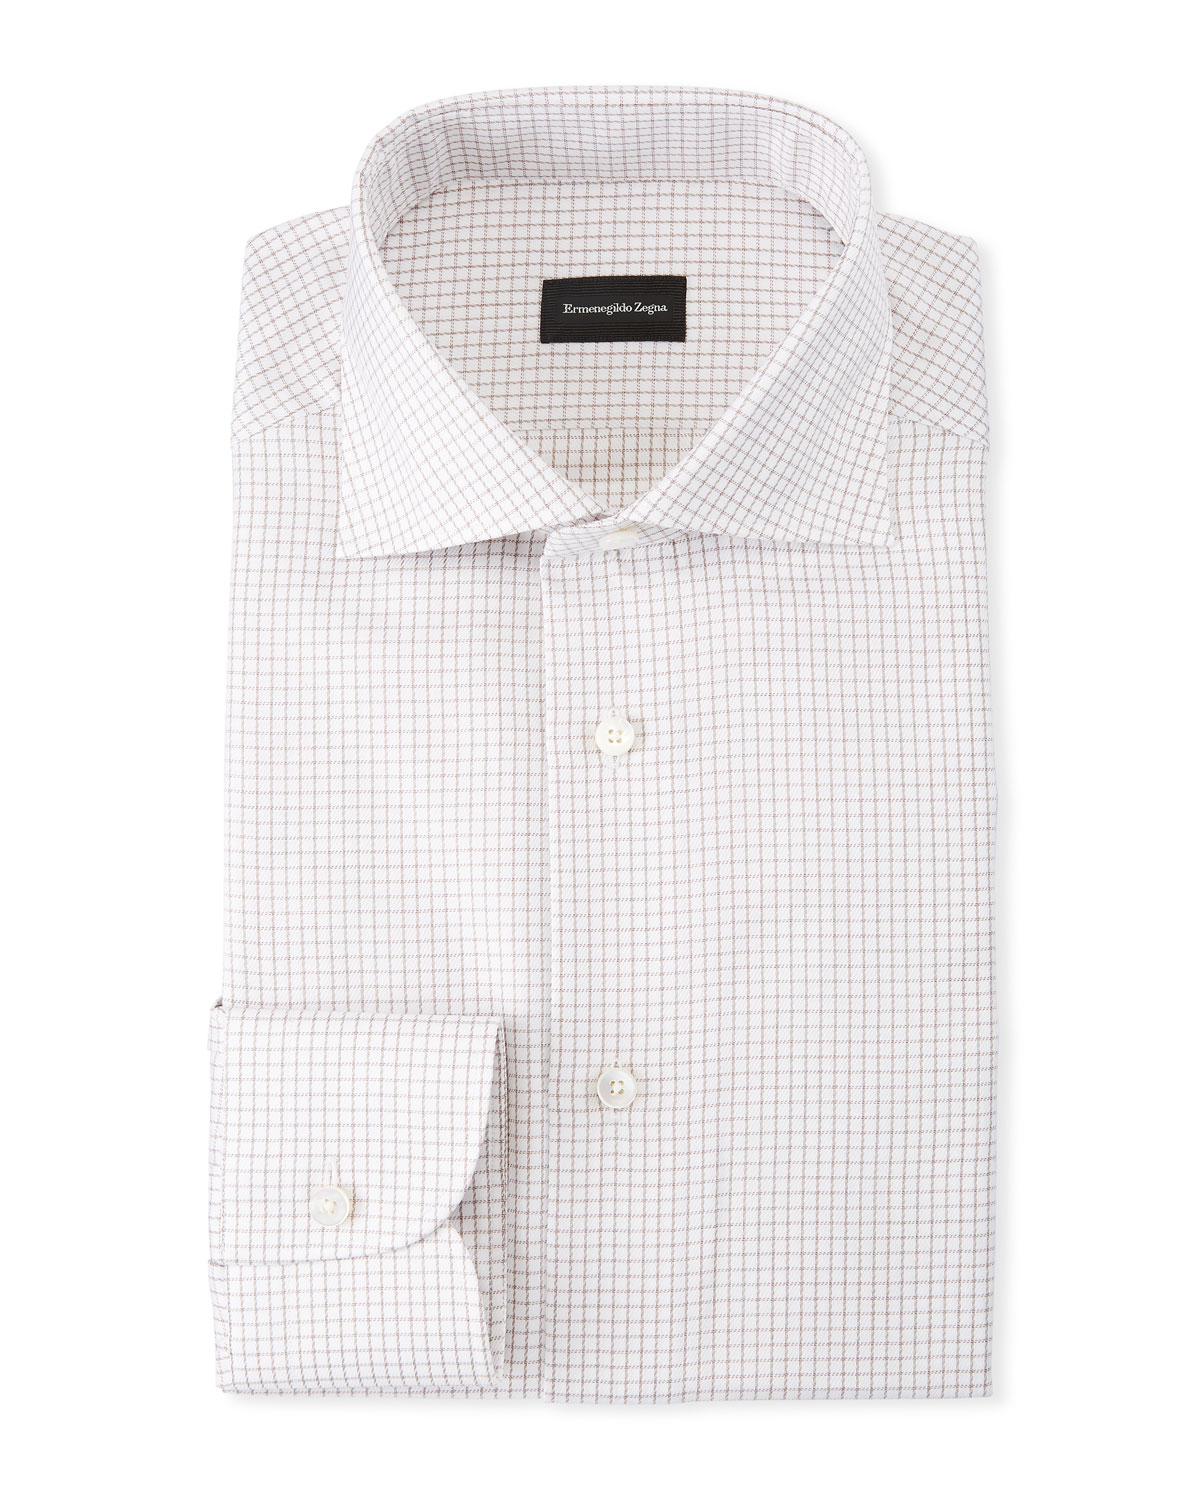 Men's Micro Check Dress Shirt